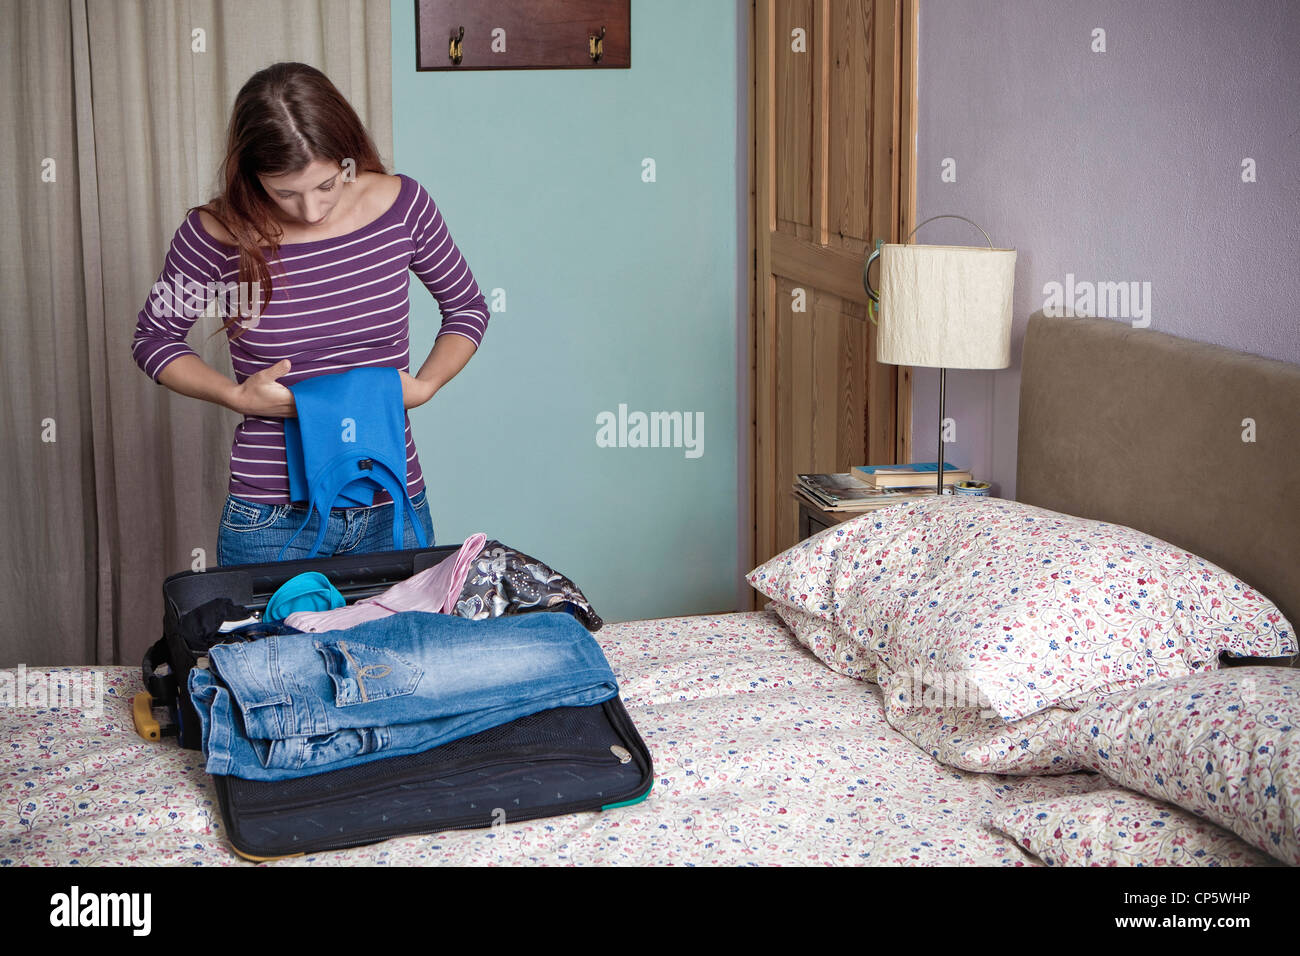 woman folds the clothes,suitcase - Stock Image